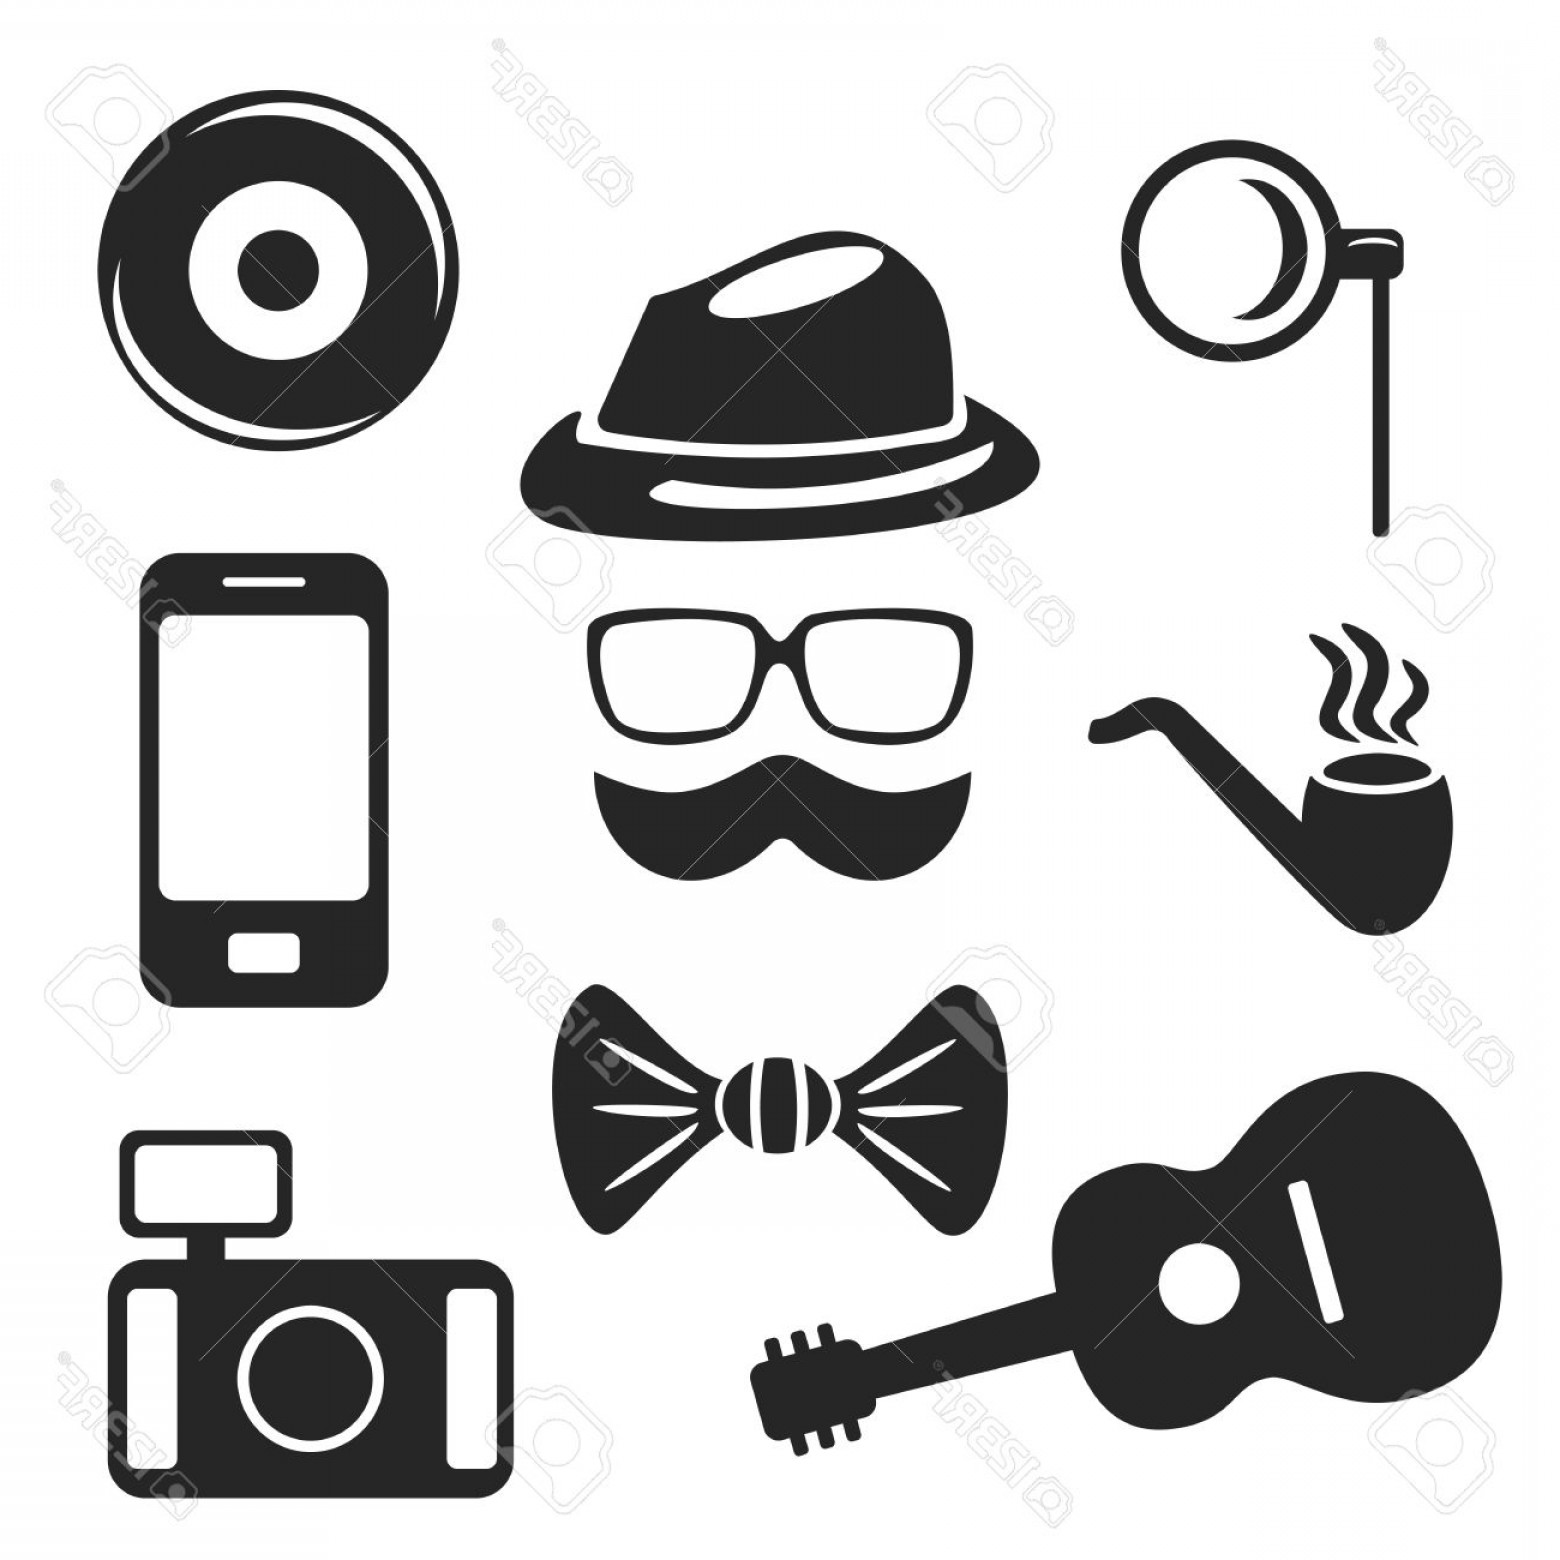 Free Vector Hipster: Photostock Vector Hipster Web And Mobile Icons Set Vector Symbols Of Pipe Camera Guitar Etc